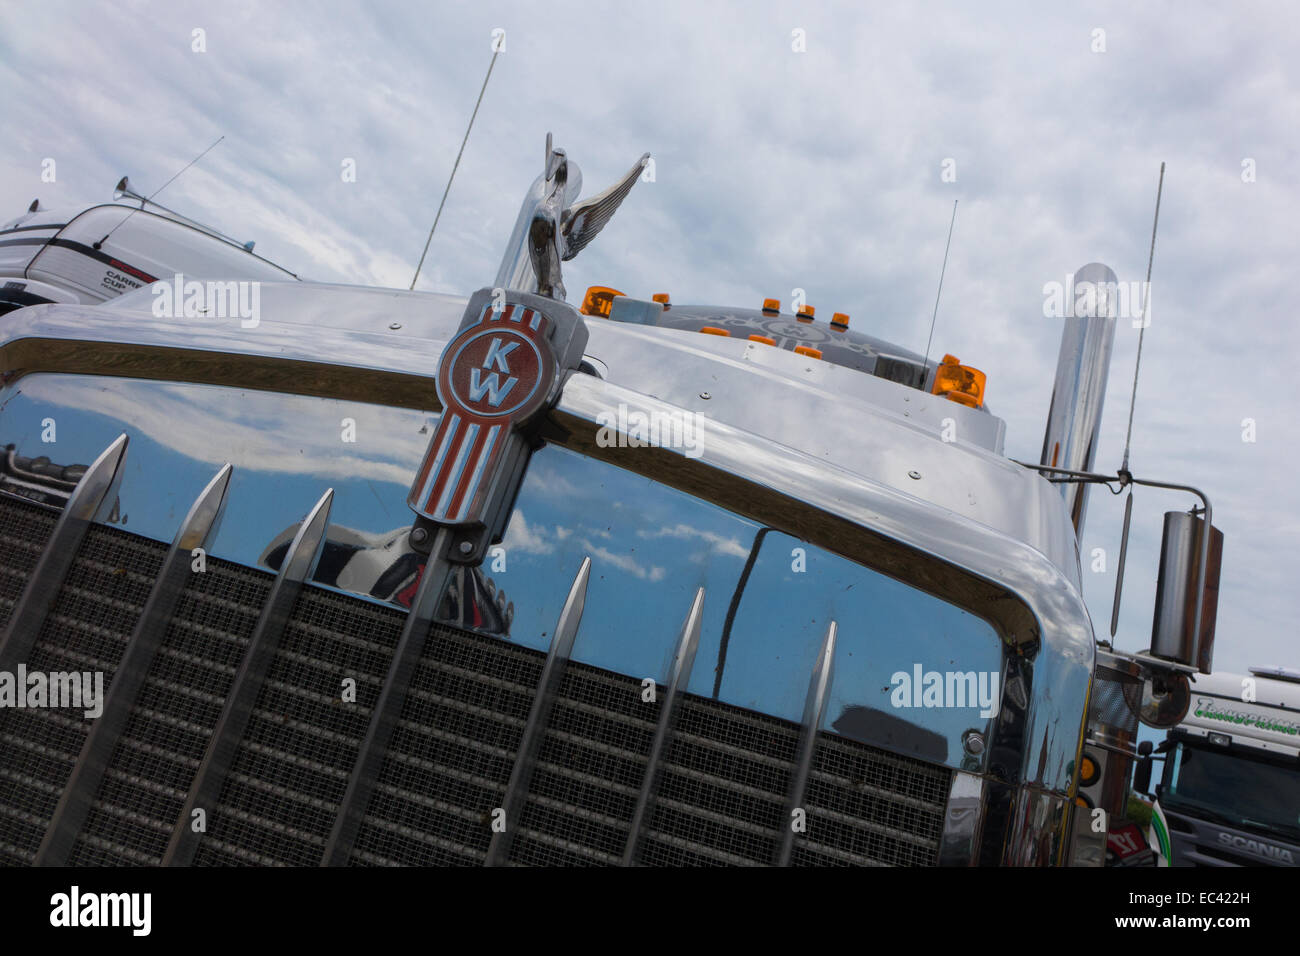 Kenworth truck at the Locomotion Day in Francueil, France - Stock Image